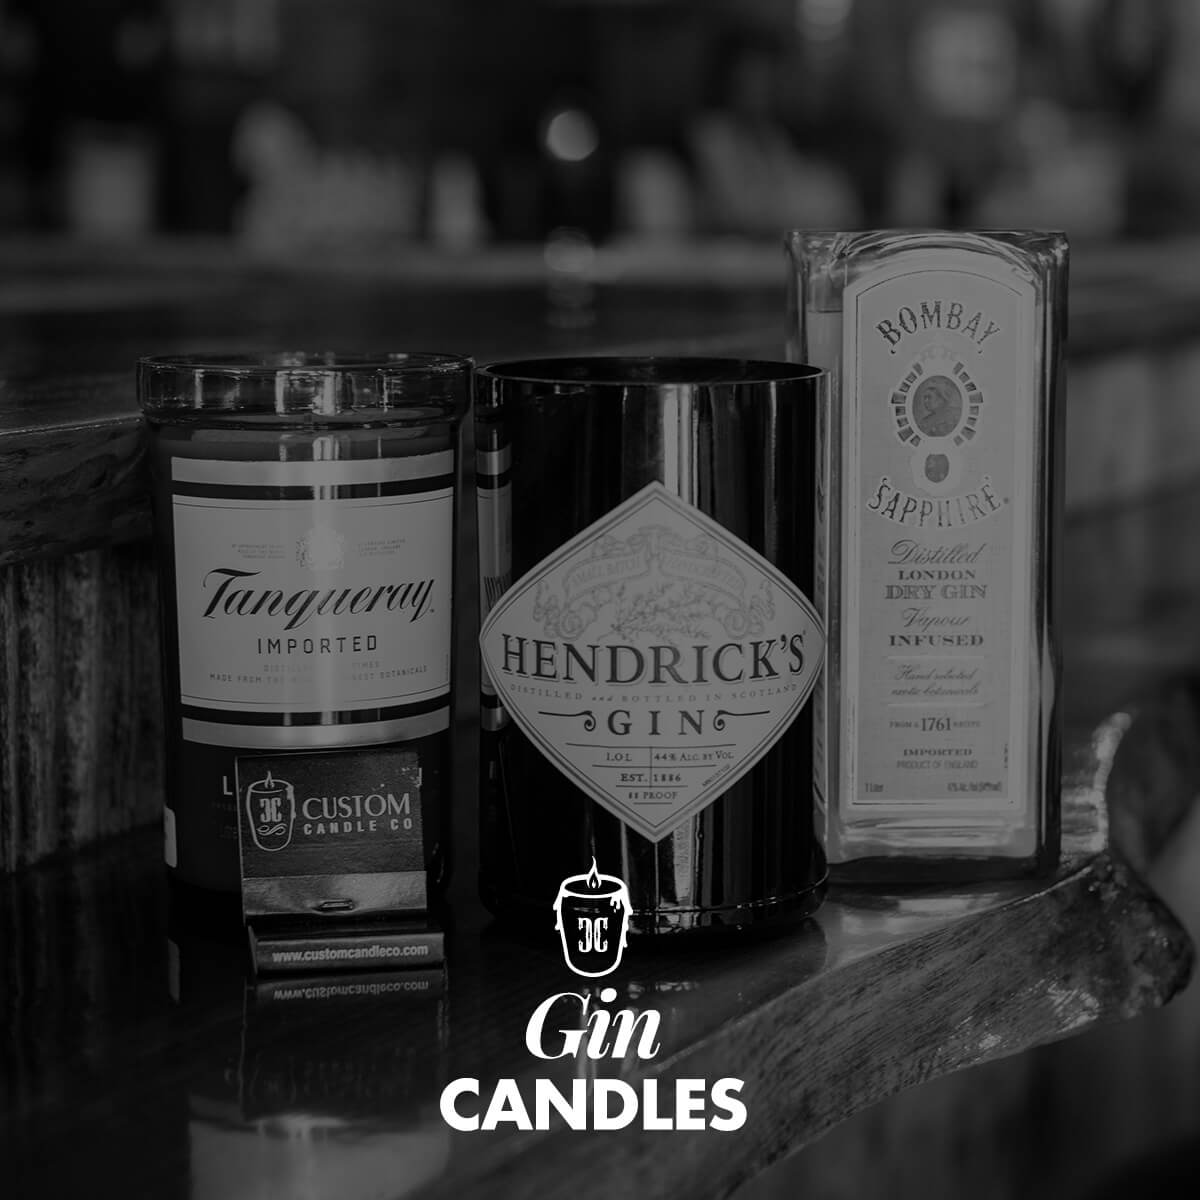 gin-candles-customcandleco-1